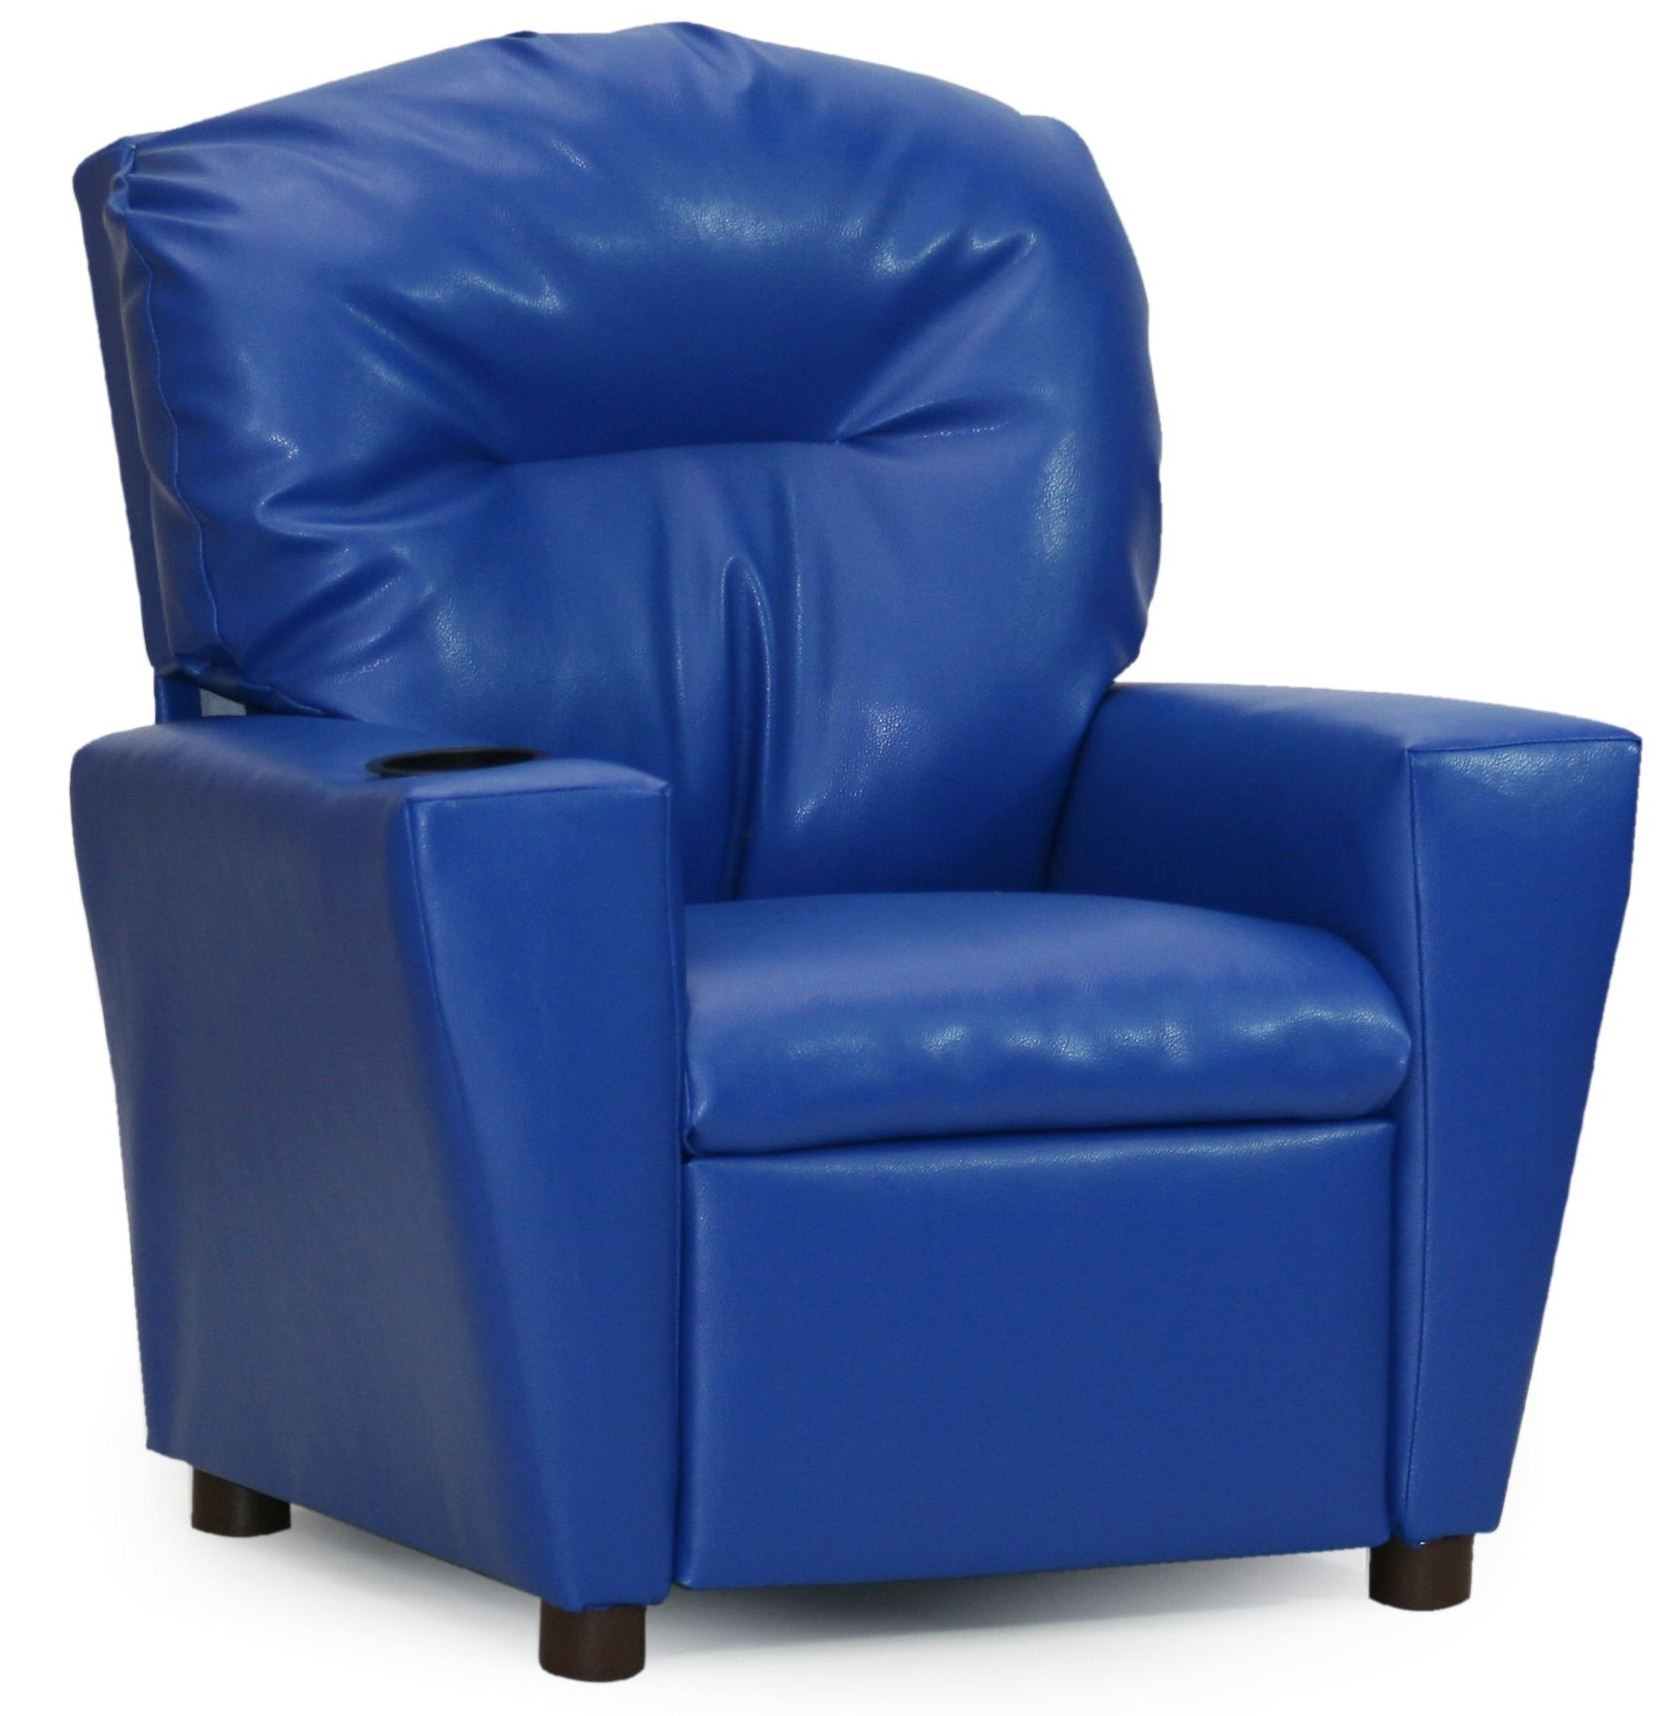 Juvenile Blue Kids Recliner With Cup Holder From Kidz